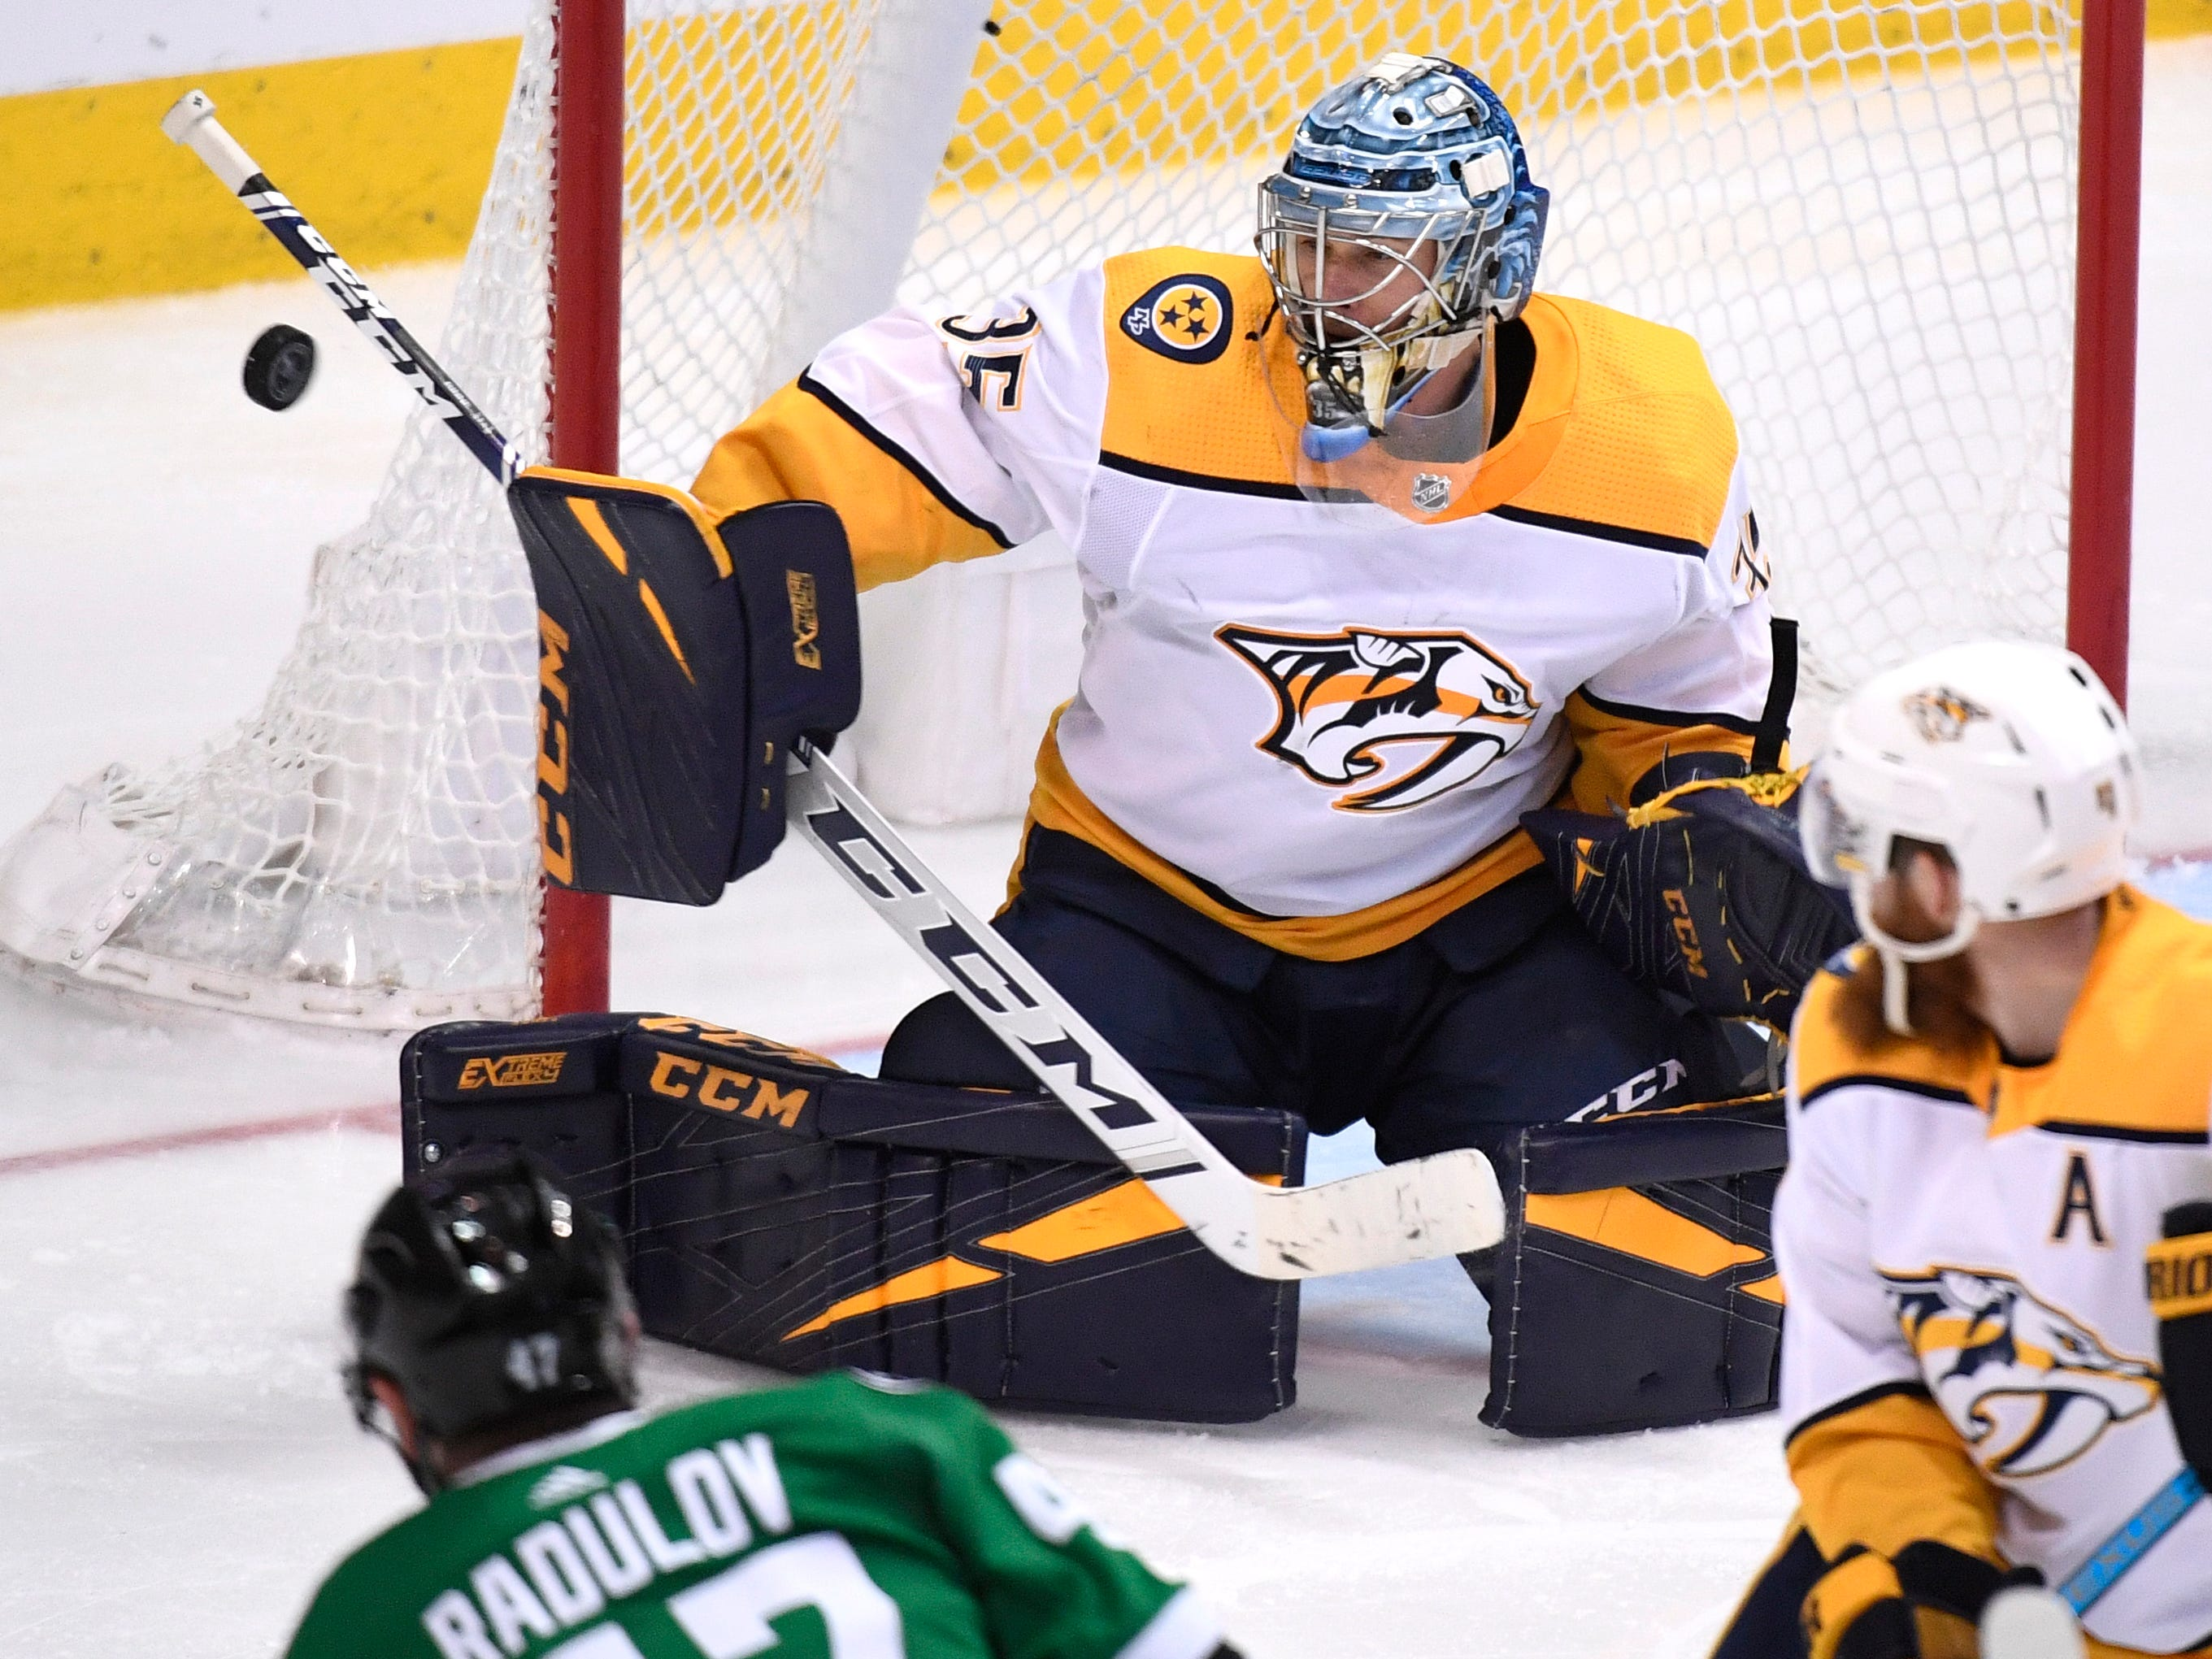 Nashville Predators goaltender Pekka Rinne (35) defends the net as Dallas Stars right wing Alexander Radulov (47) and Nashville Predators defenseman Ryan Ellis (4) watch during the third period of the divisional semifinal game at the American Airlines Center in Dallas, Texas, Monday, April 22, 2019.